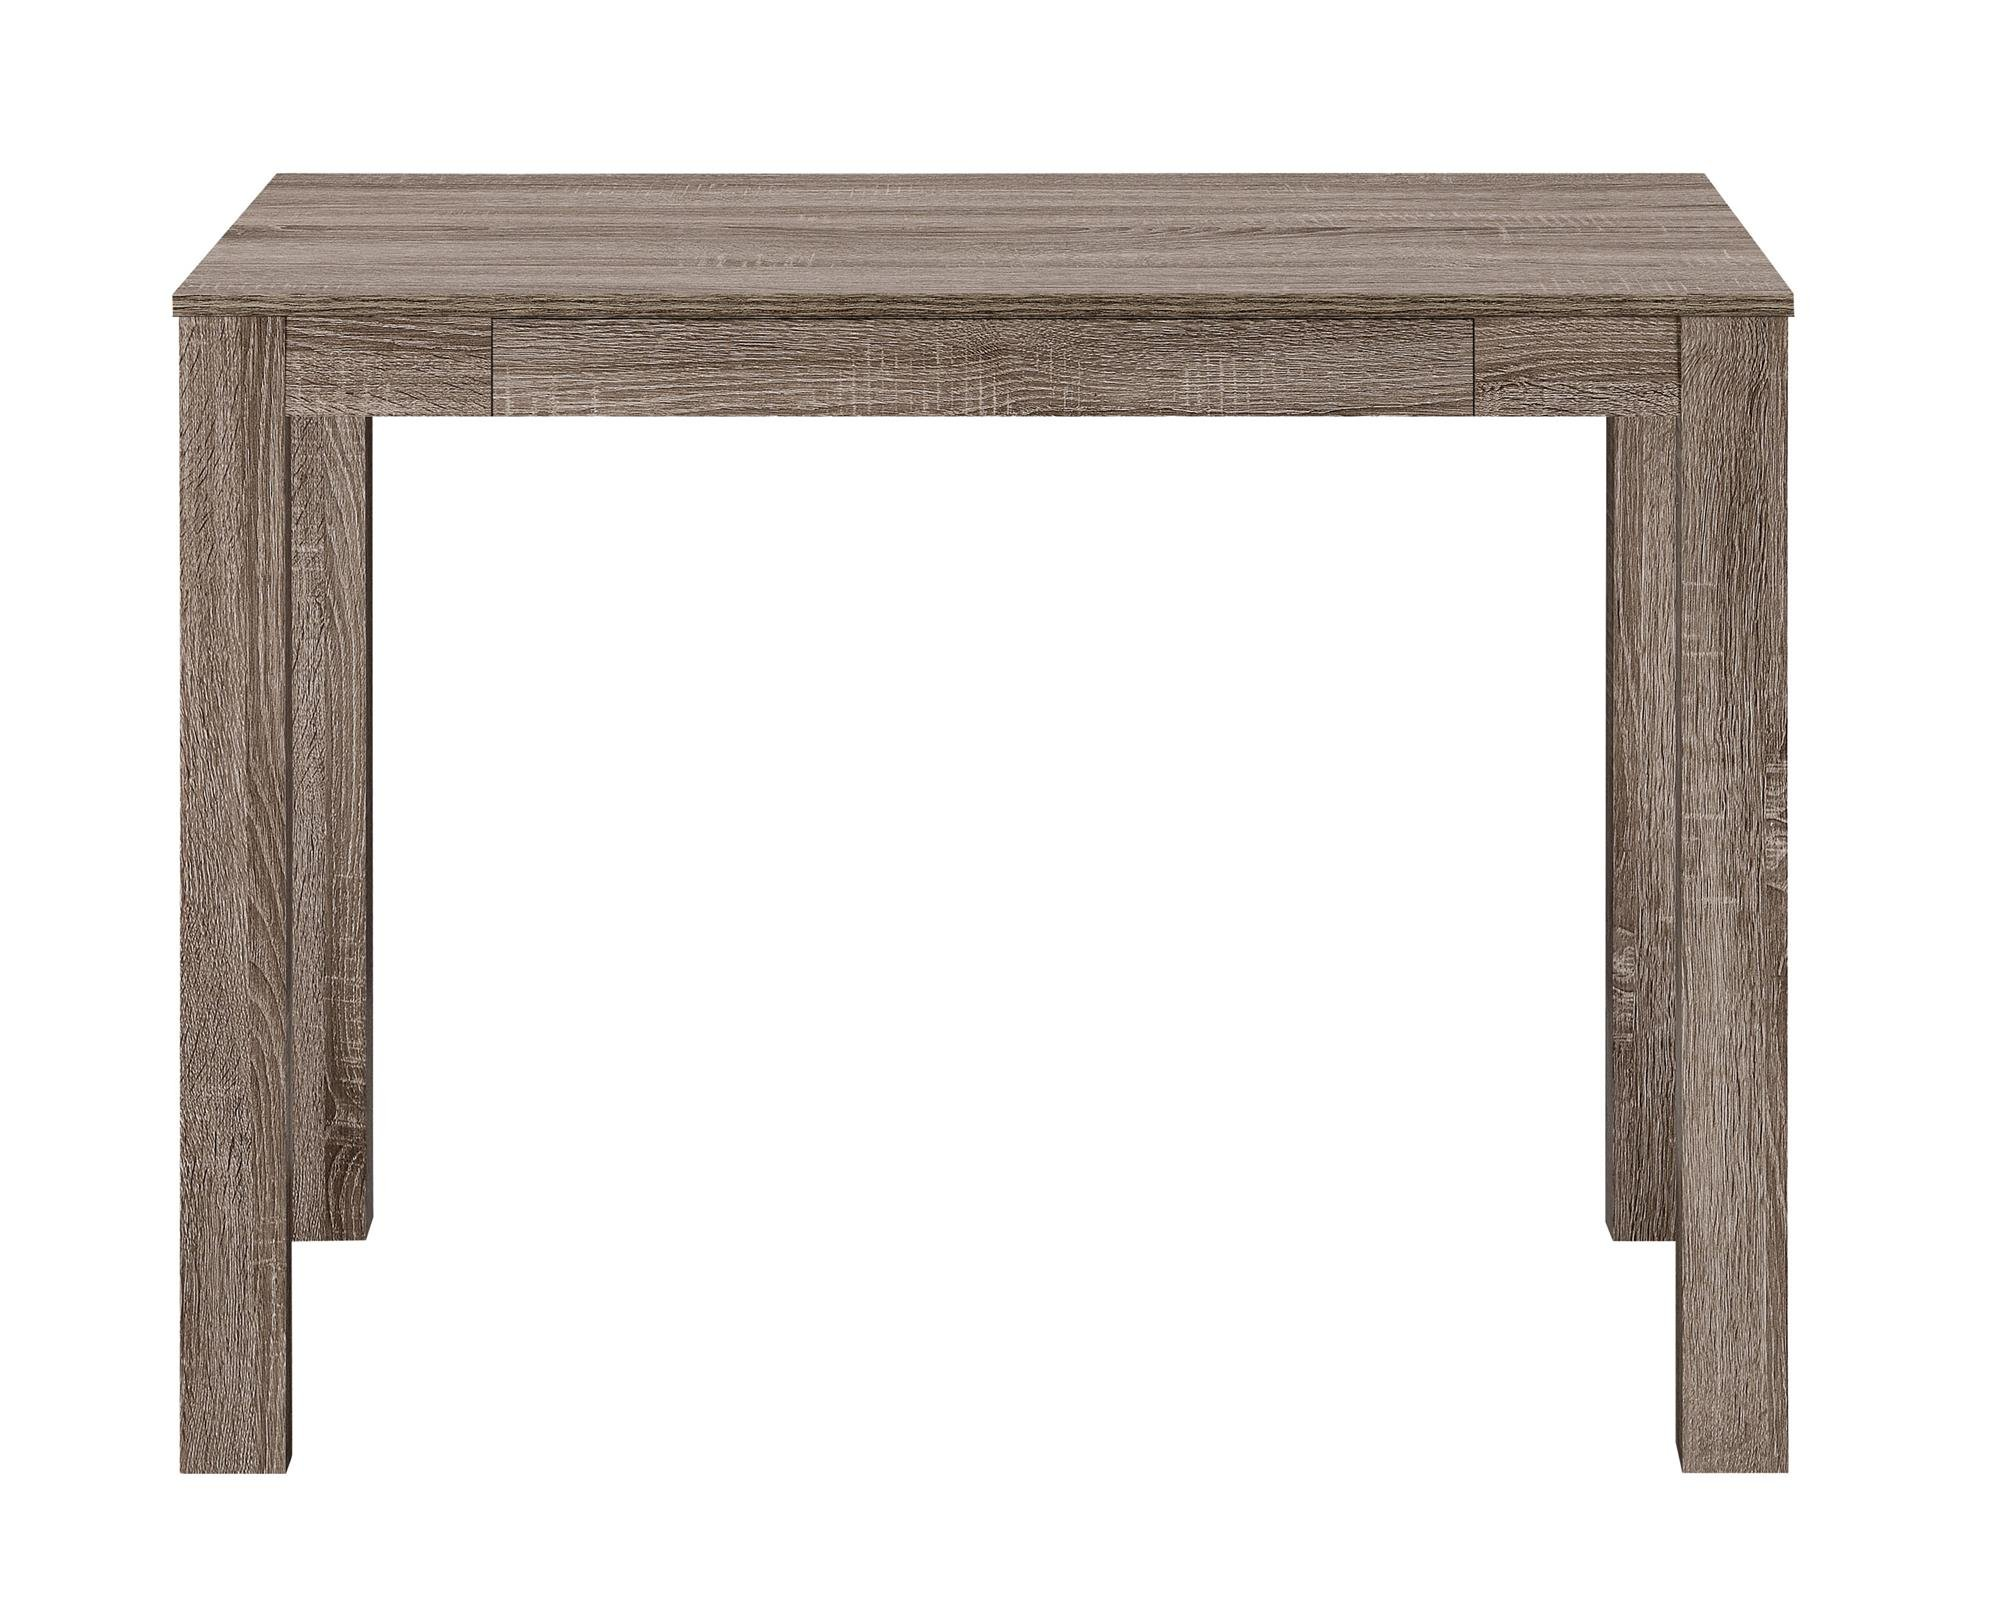 Ameriwood Home Delilah Parsons Desk with Drawer, Sonoma Oak by Ameriwood Home